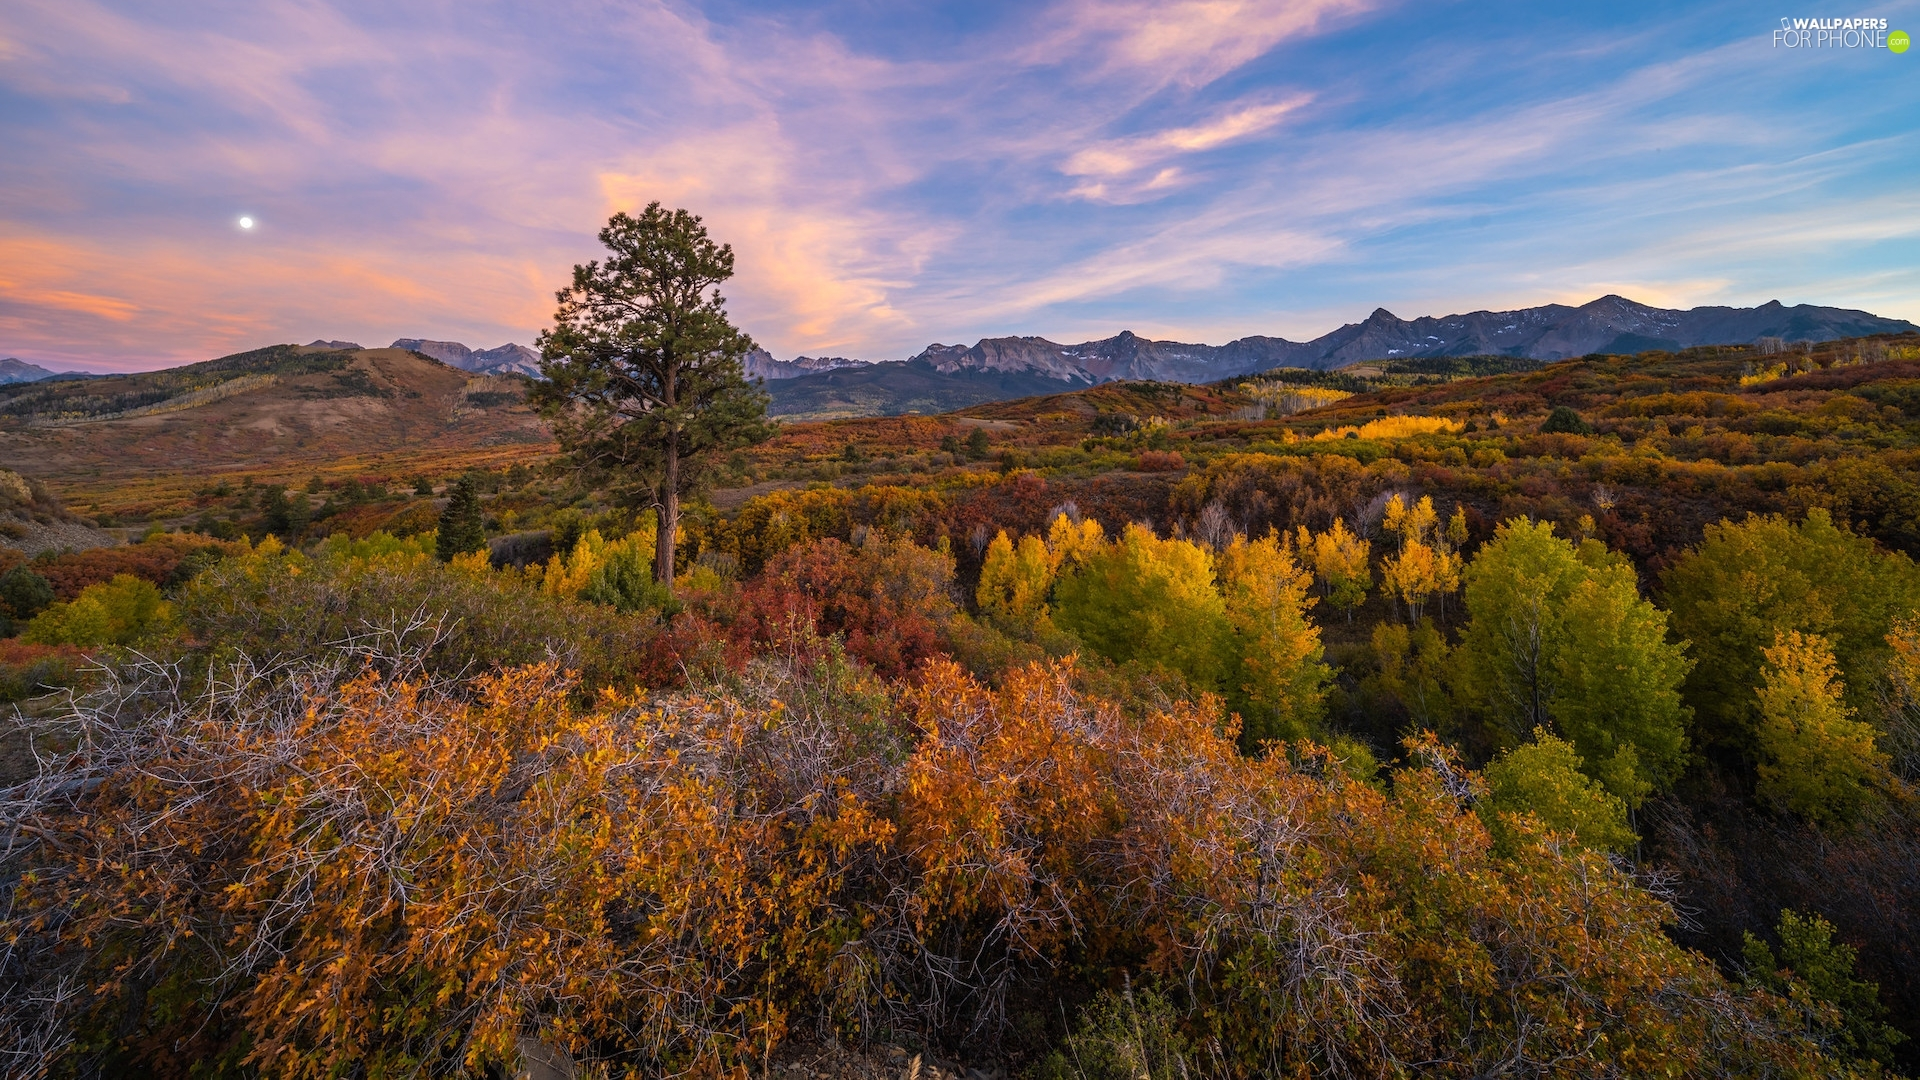 State of Colorado, The United States, Telluride, autumn, trees, moon, VEGETATION, Coloured, The Hills